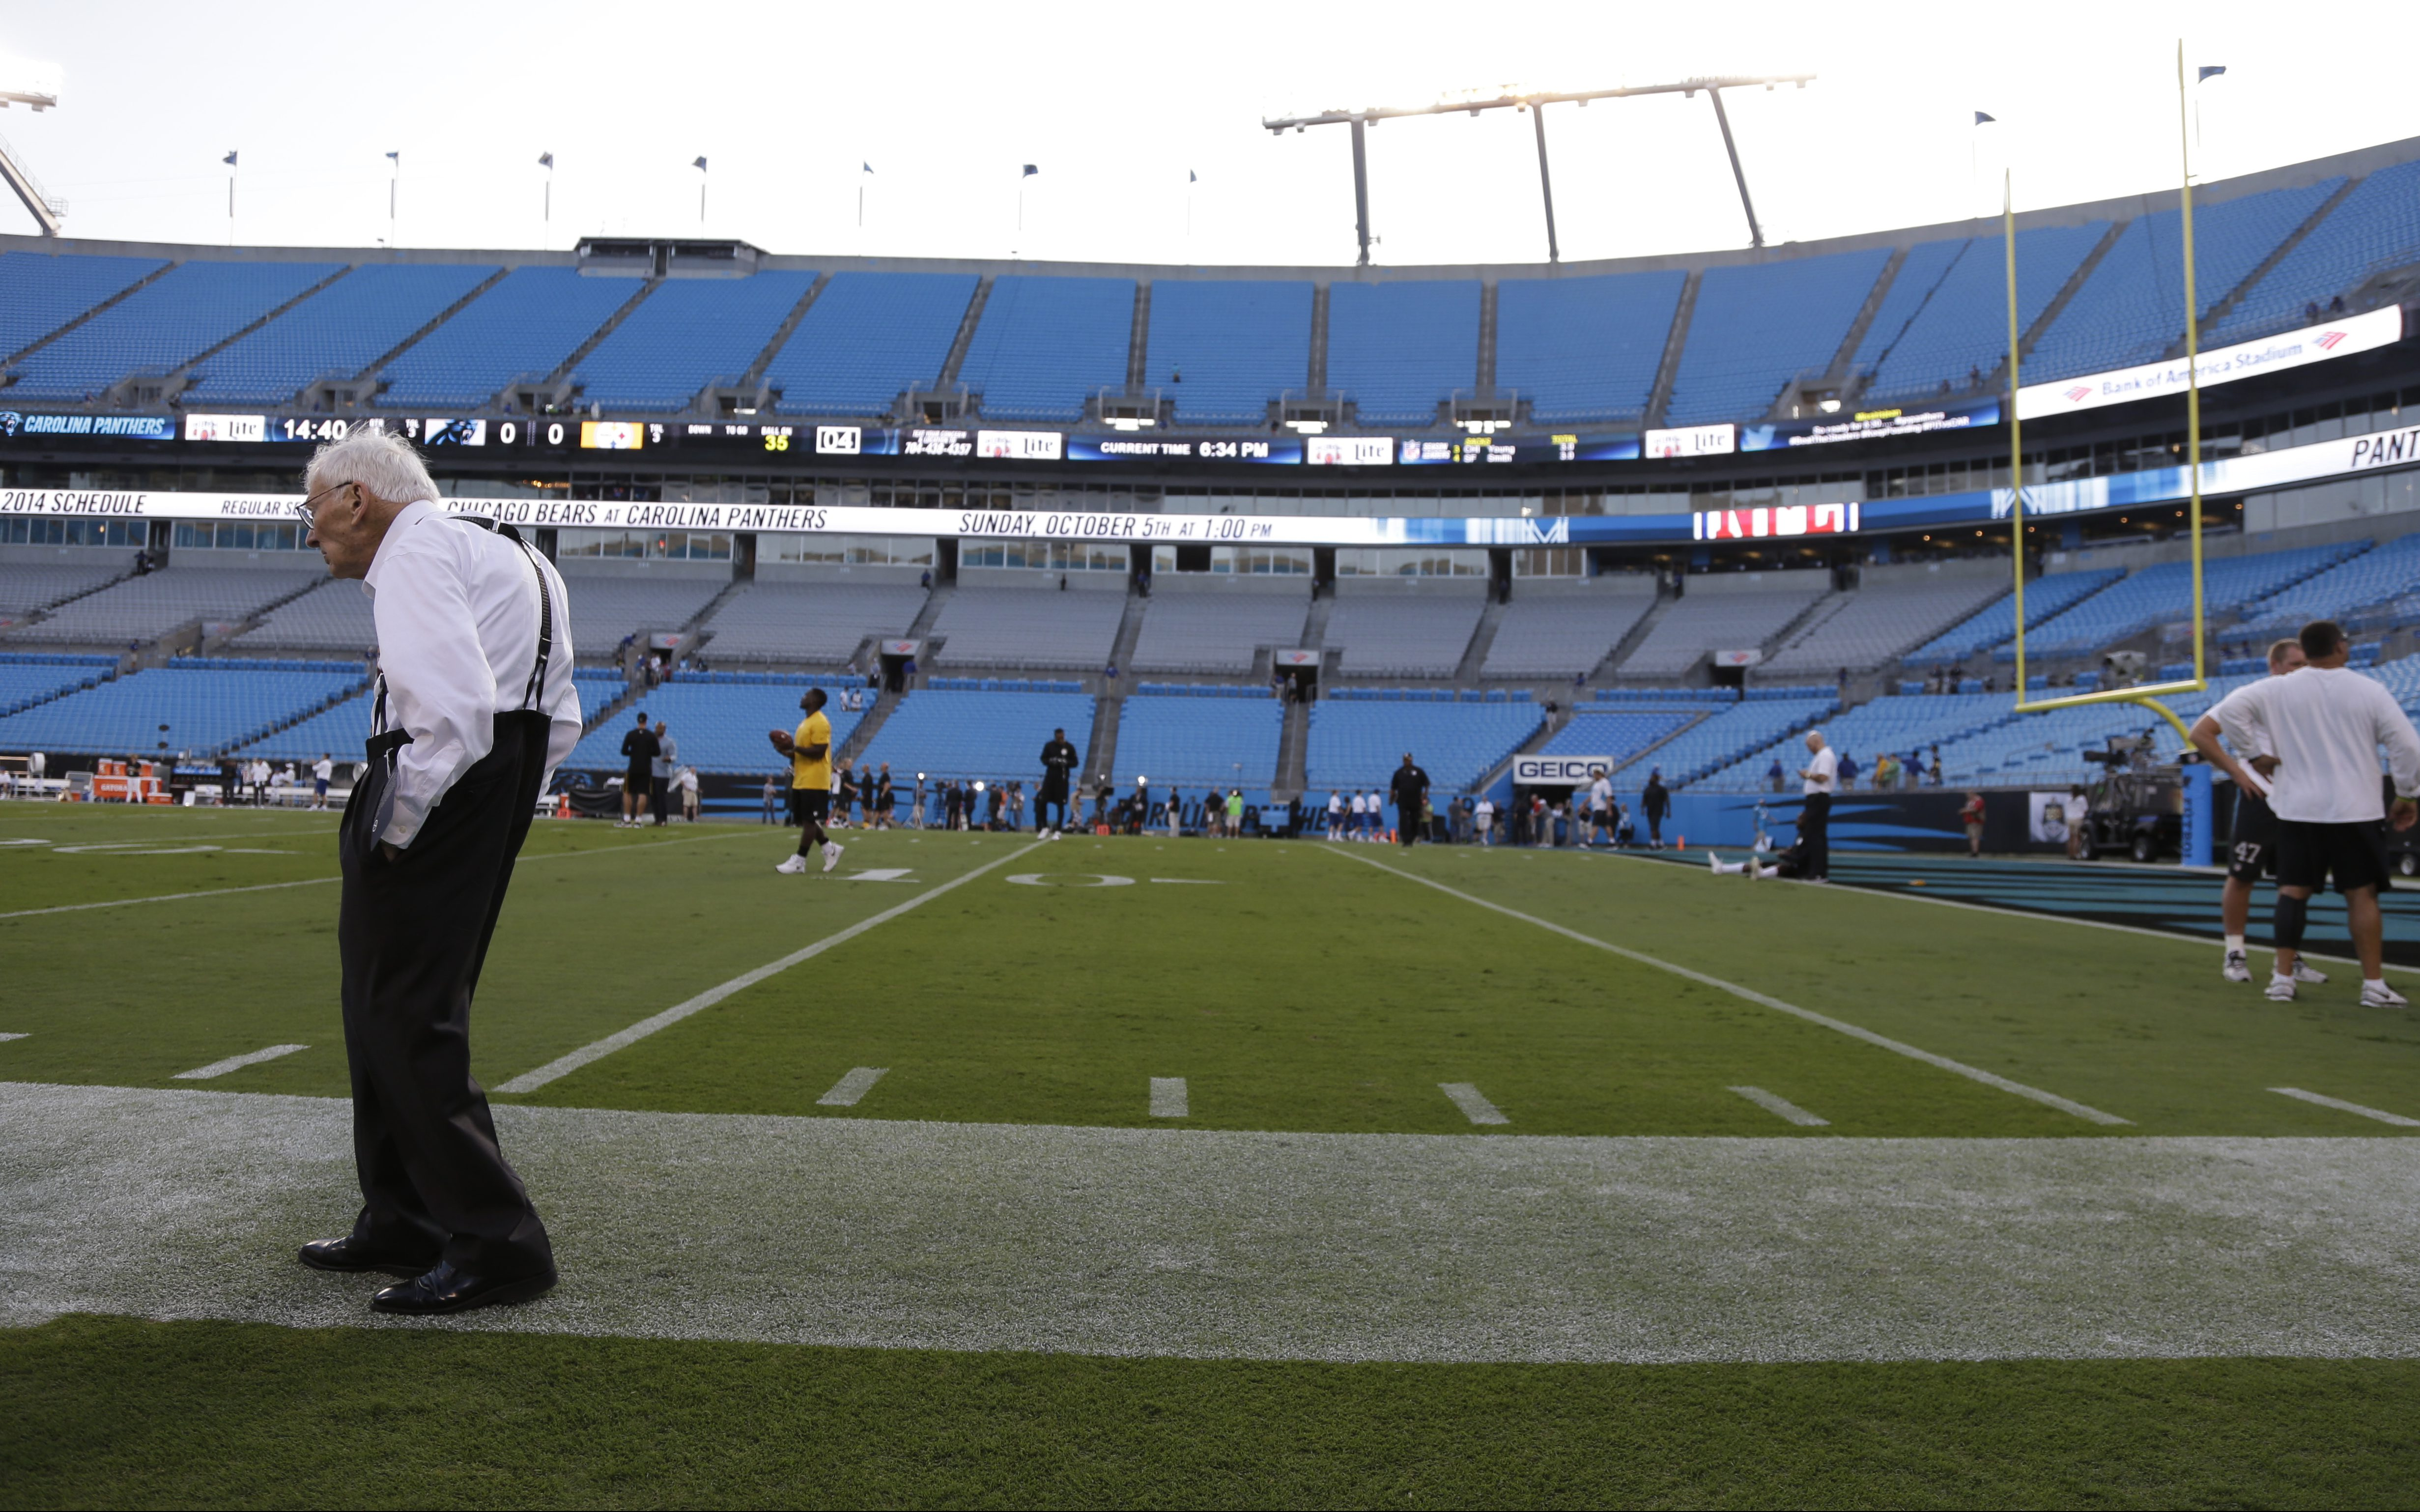 Pittsburgh Steelers chairman Dan Rooney walks down the field as players warm up before an NFL football game against the Carolina Panthers in Charlotte, N.C., Sunday, Sept. 21, 2014.